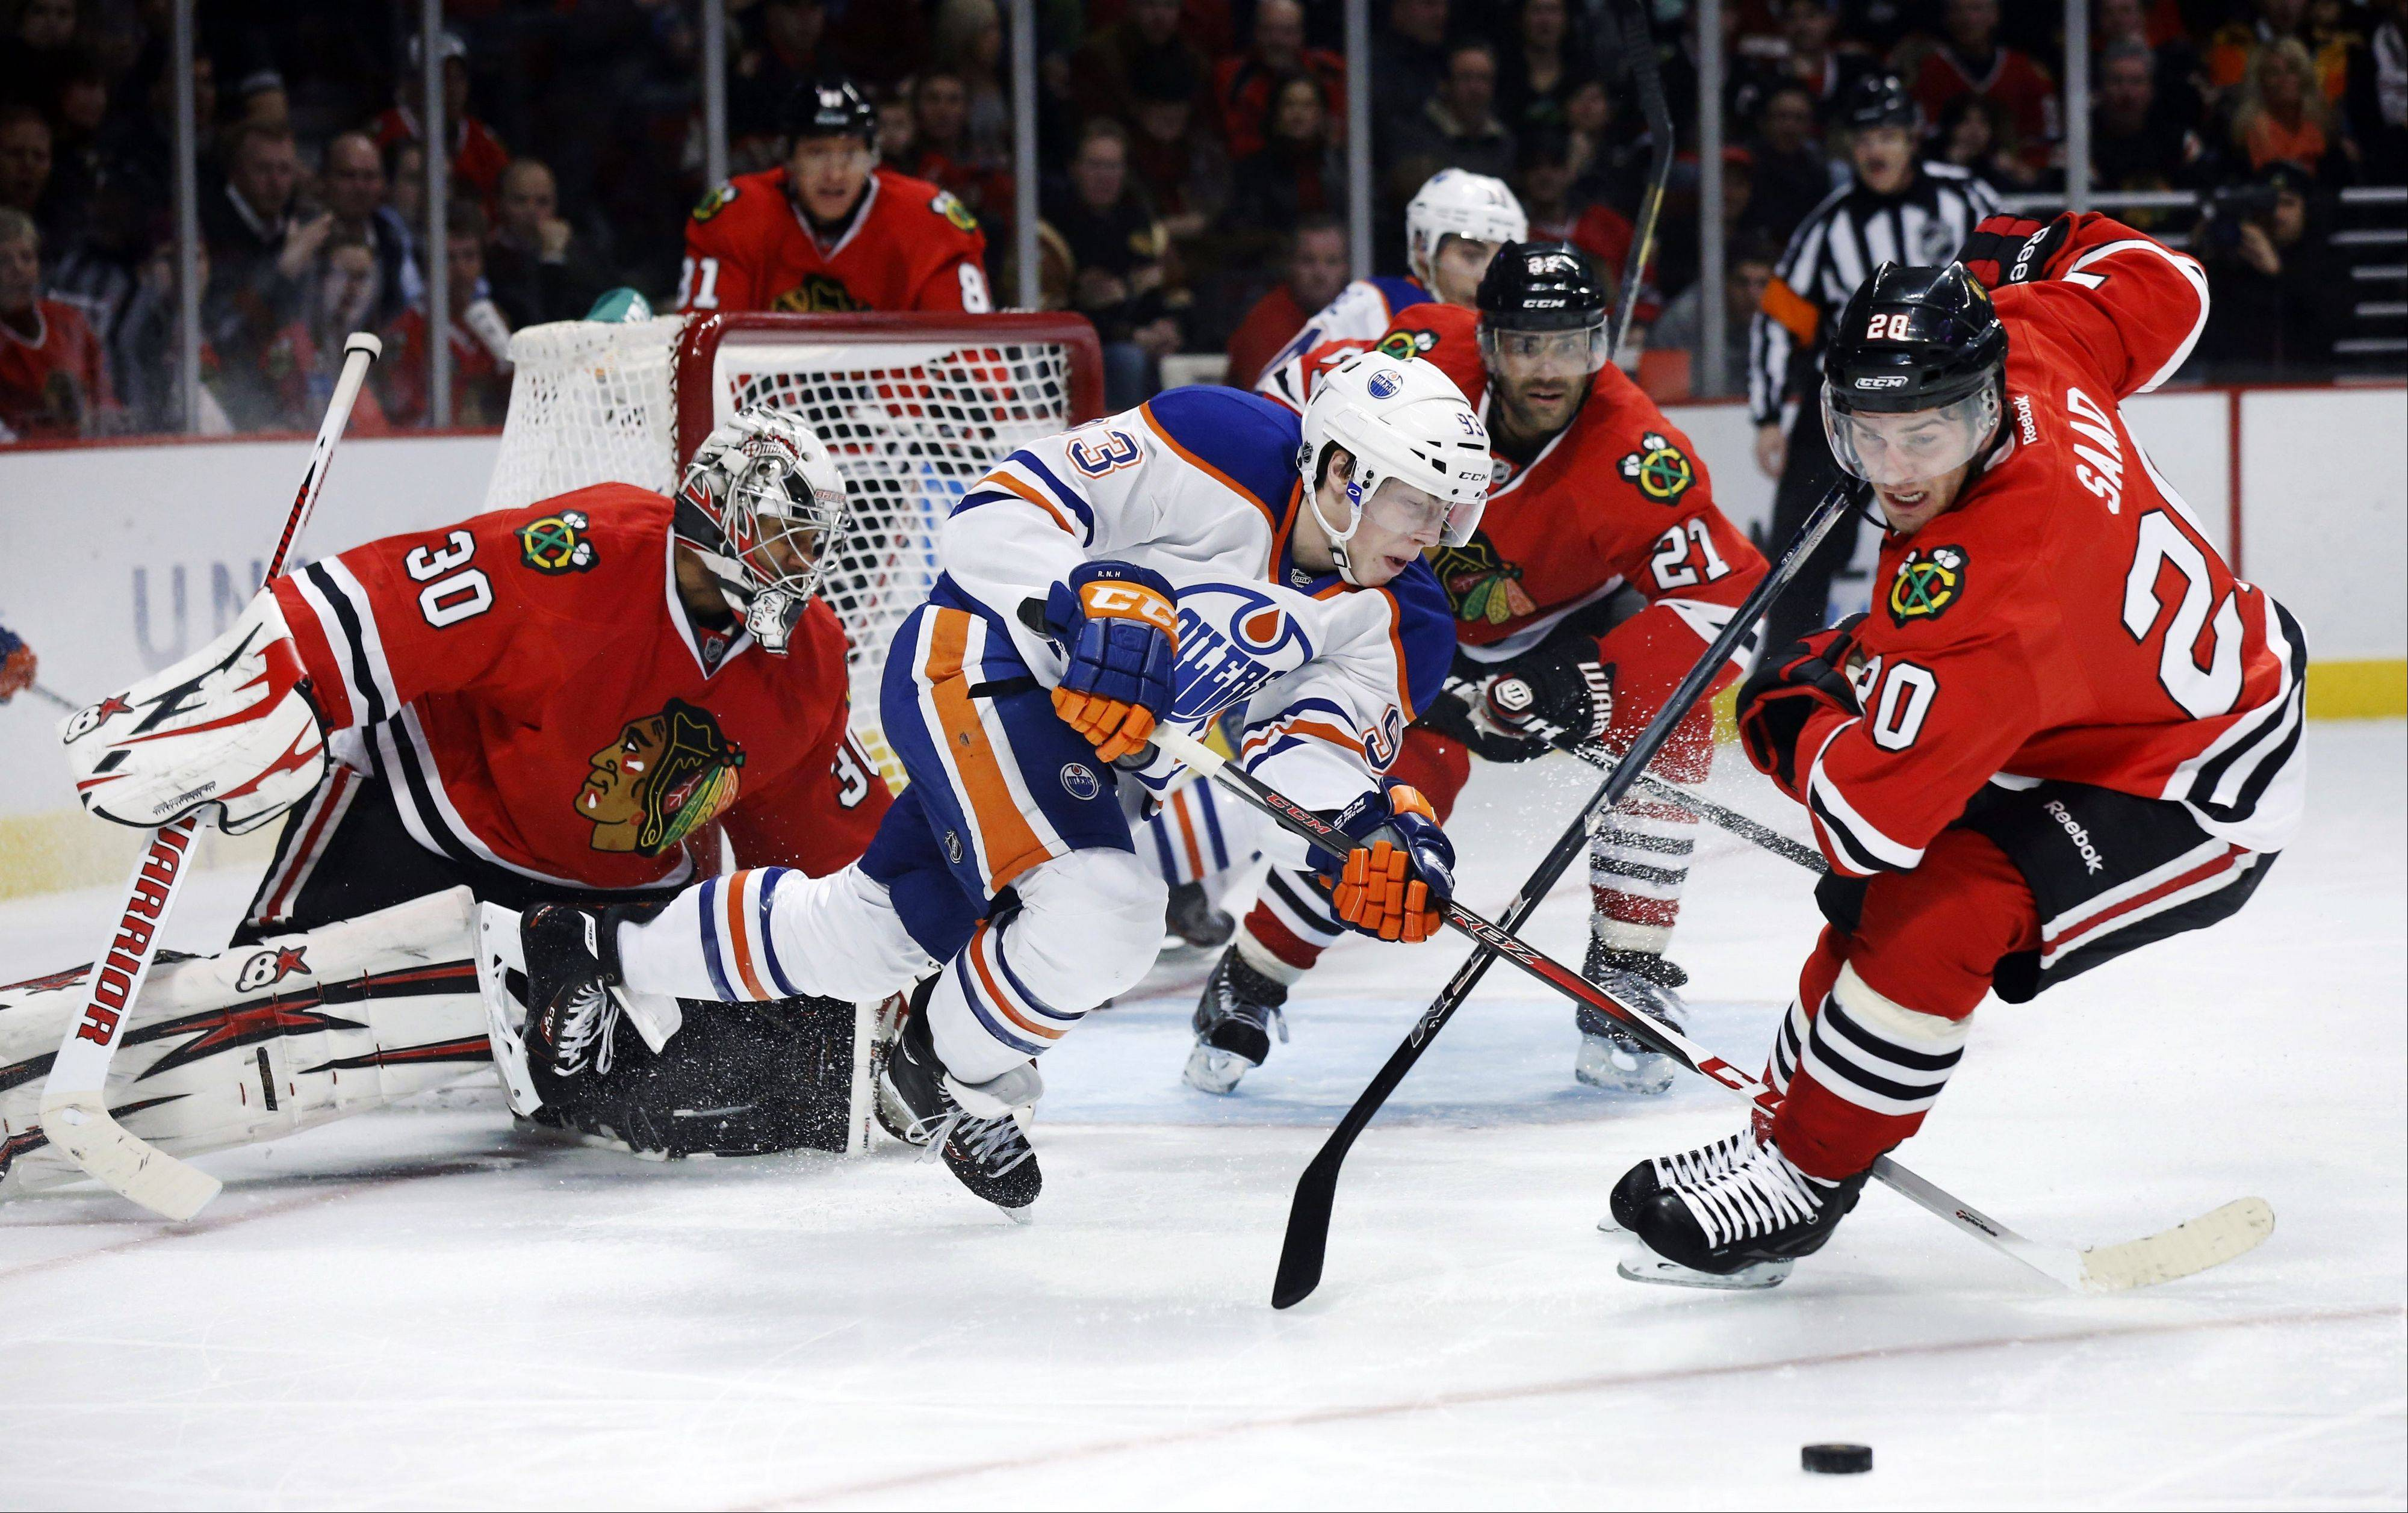 Edmonton Oilers forward Ryan Nugent-Hopkins is unable to get a rebound off Chicago Blackhawks goalie Ray Emery as left wing Brandon Saad clears the puck during the first period.